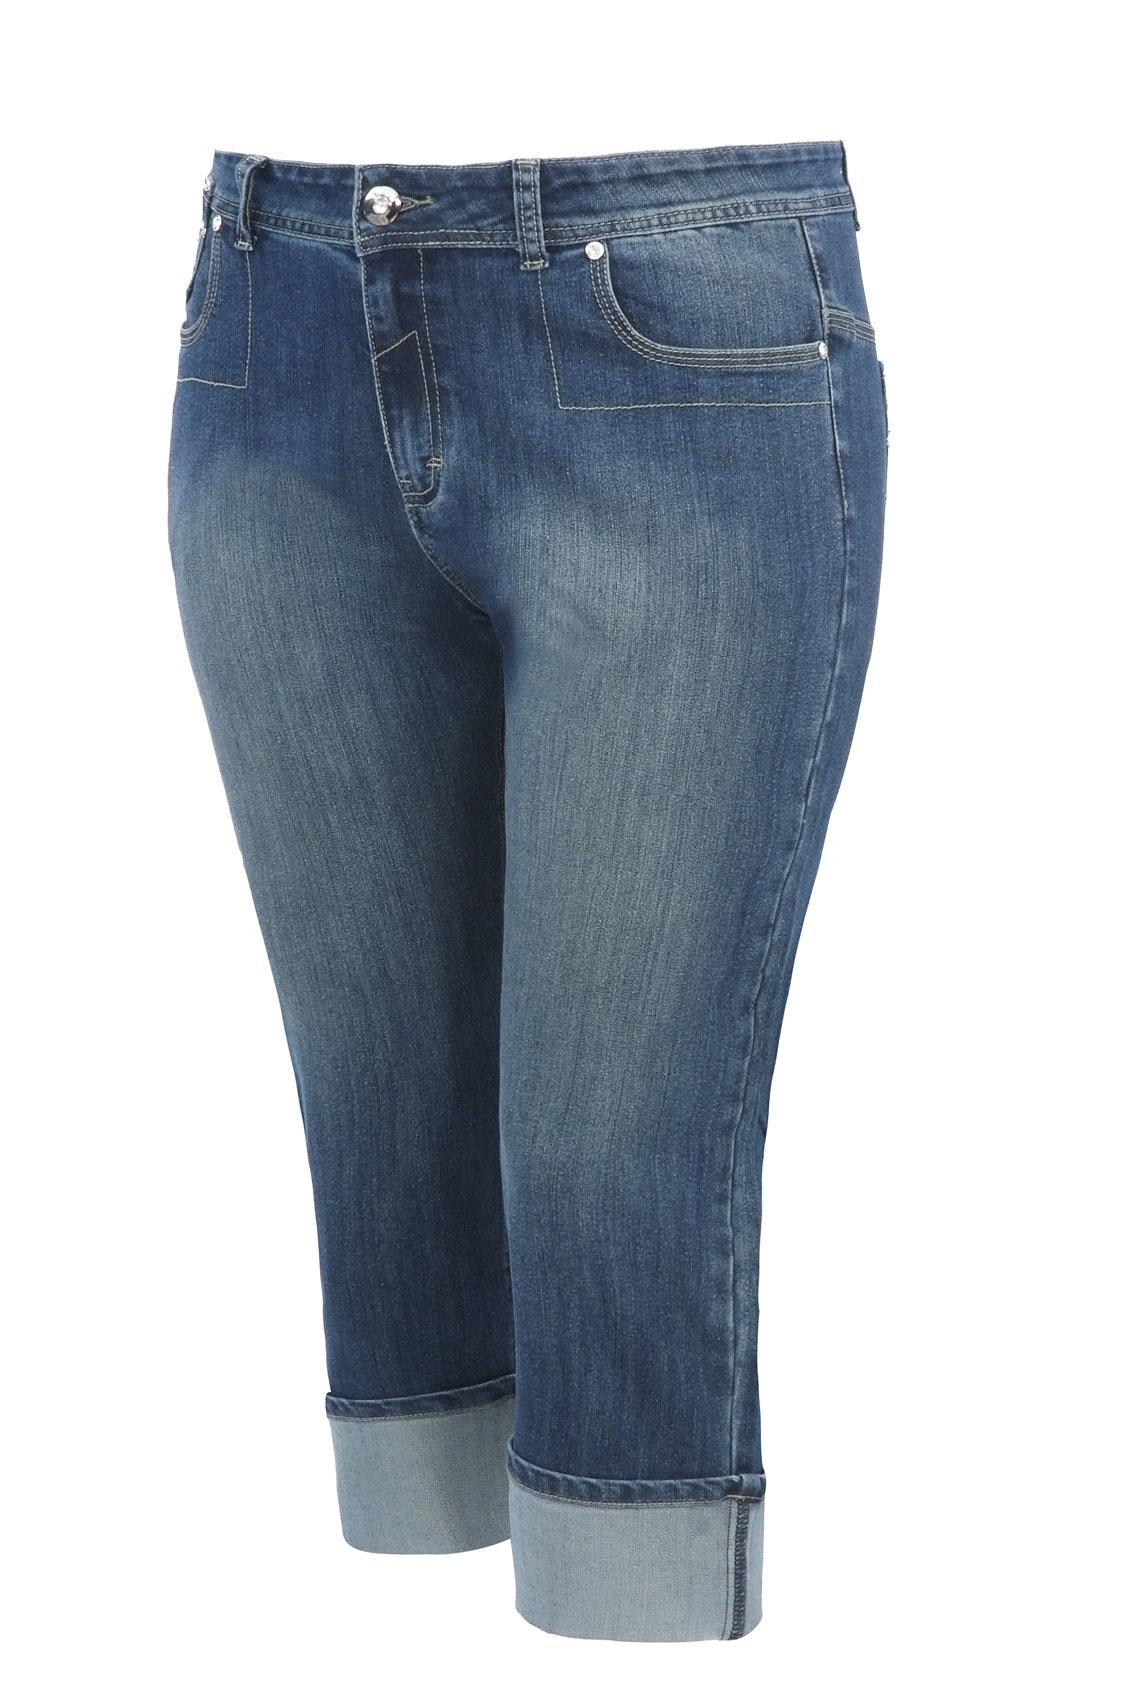 Crop Jeans For Plus Size Women